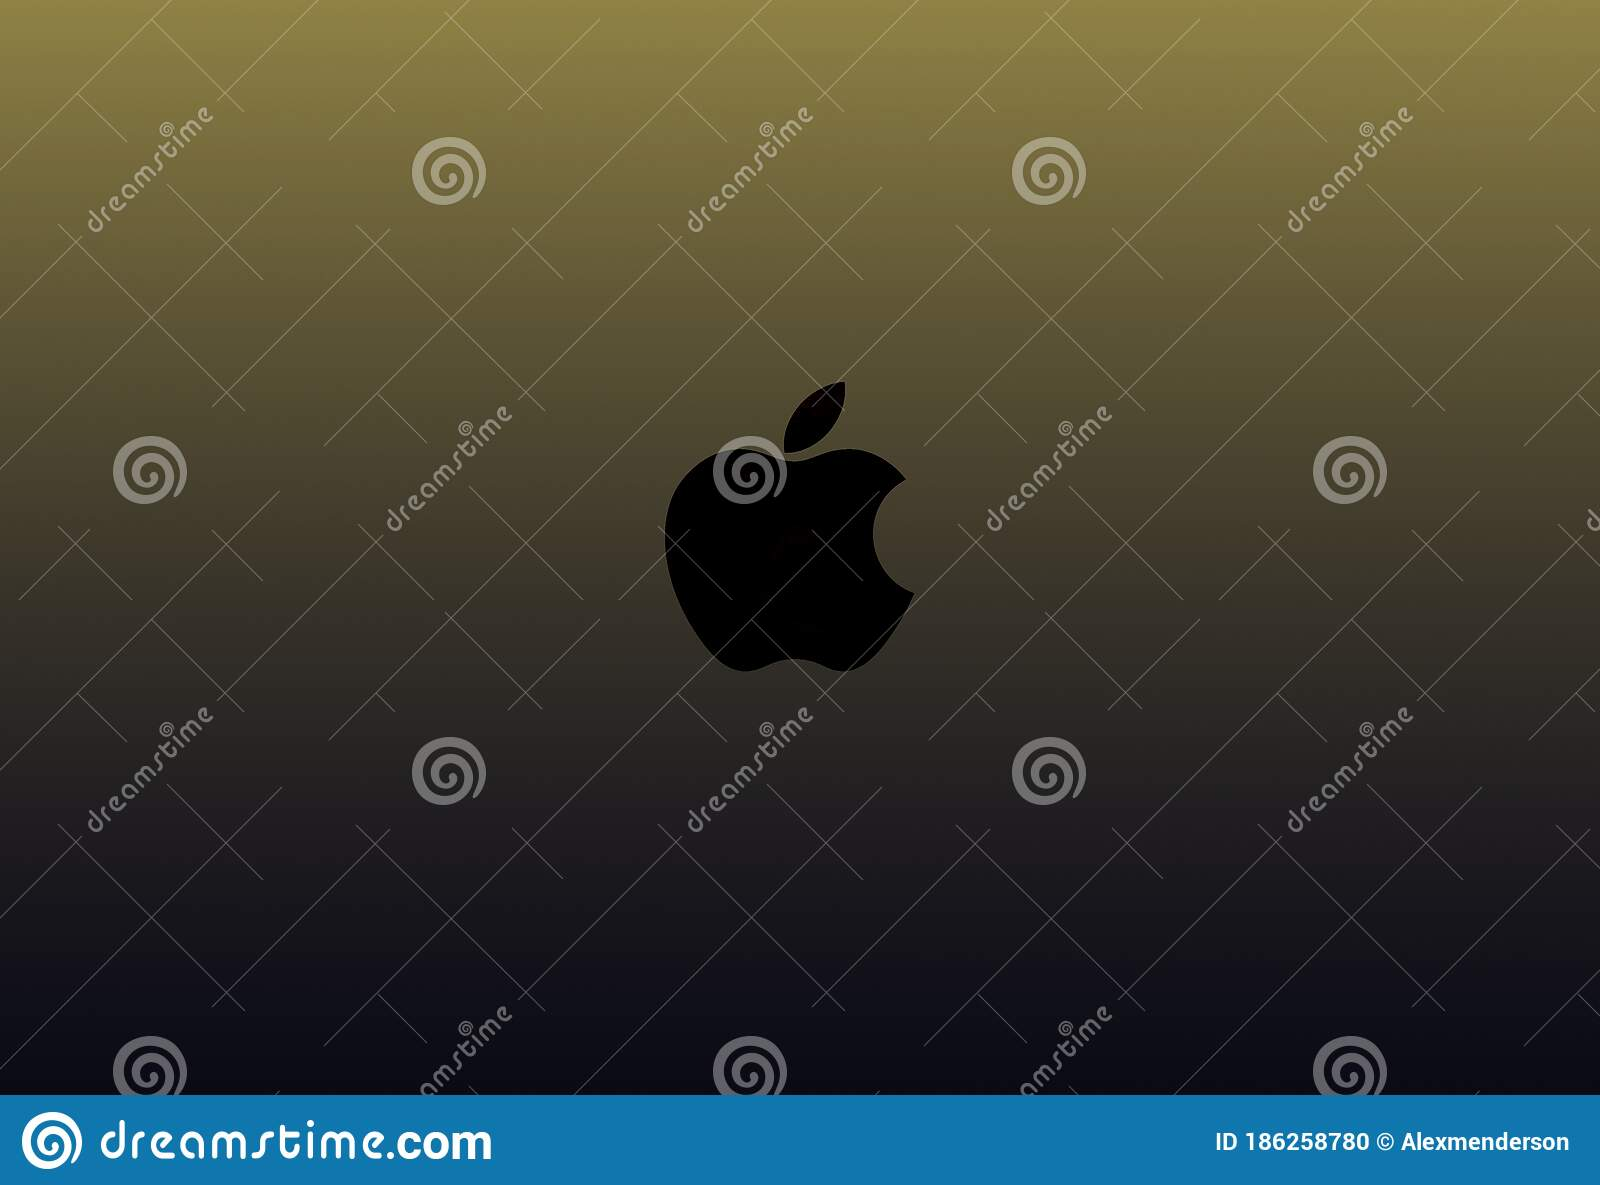 Black Apple Inc Logo On A Black Gold Background Editorial Image Image Of Background Beautiful 186258780